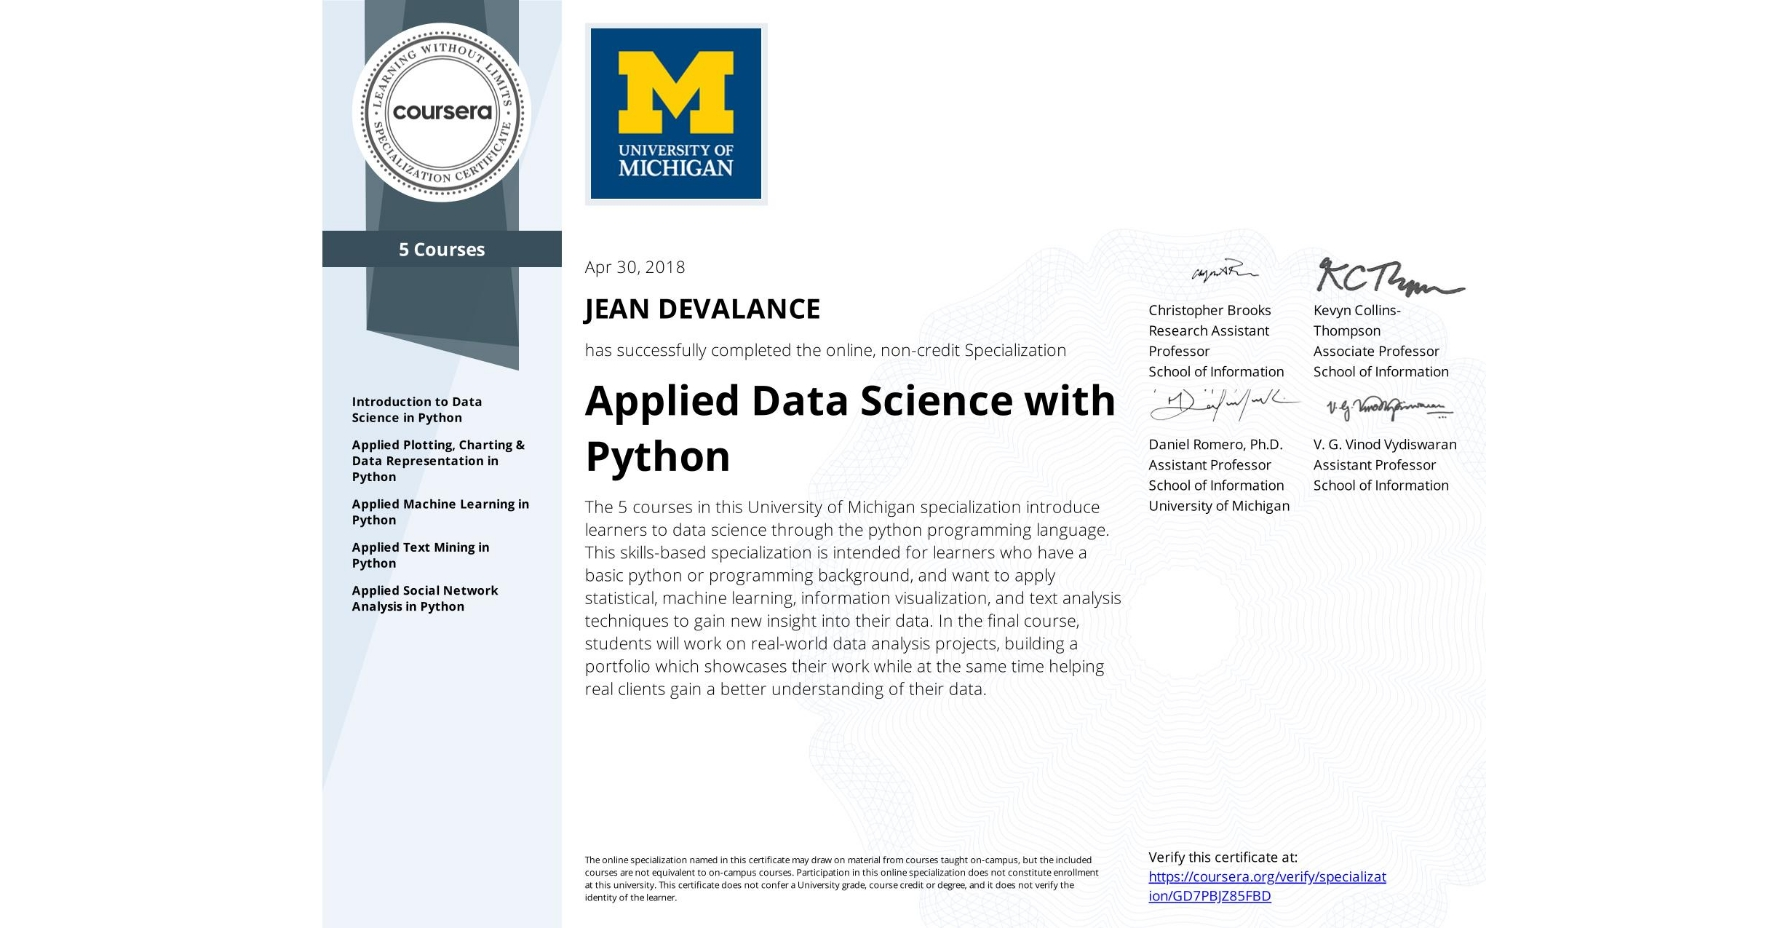 View certificate for JEAN DEVALANCE, Applied Data Science with Python, offered through Coursera. The 5 courses in this University of Michigan specialization introduce learners to data science through the python programming language. This skills-based specialization is intended for learners who have a basic python or programming background, and want to apply statistical, machine learning, information visualization, and text analysis techniques to gain new insight into their data. In the final course, students will work on real-world data analysis projects, building a portfolio which showcases their work while at the same time helping real clients gain a better understanding of their data.